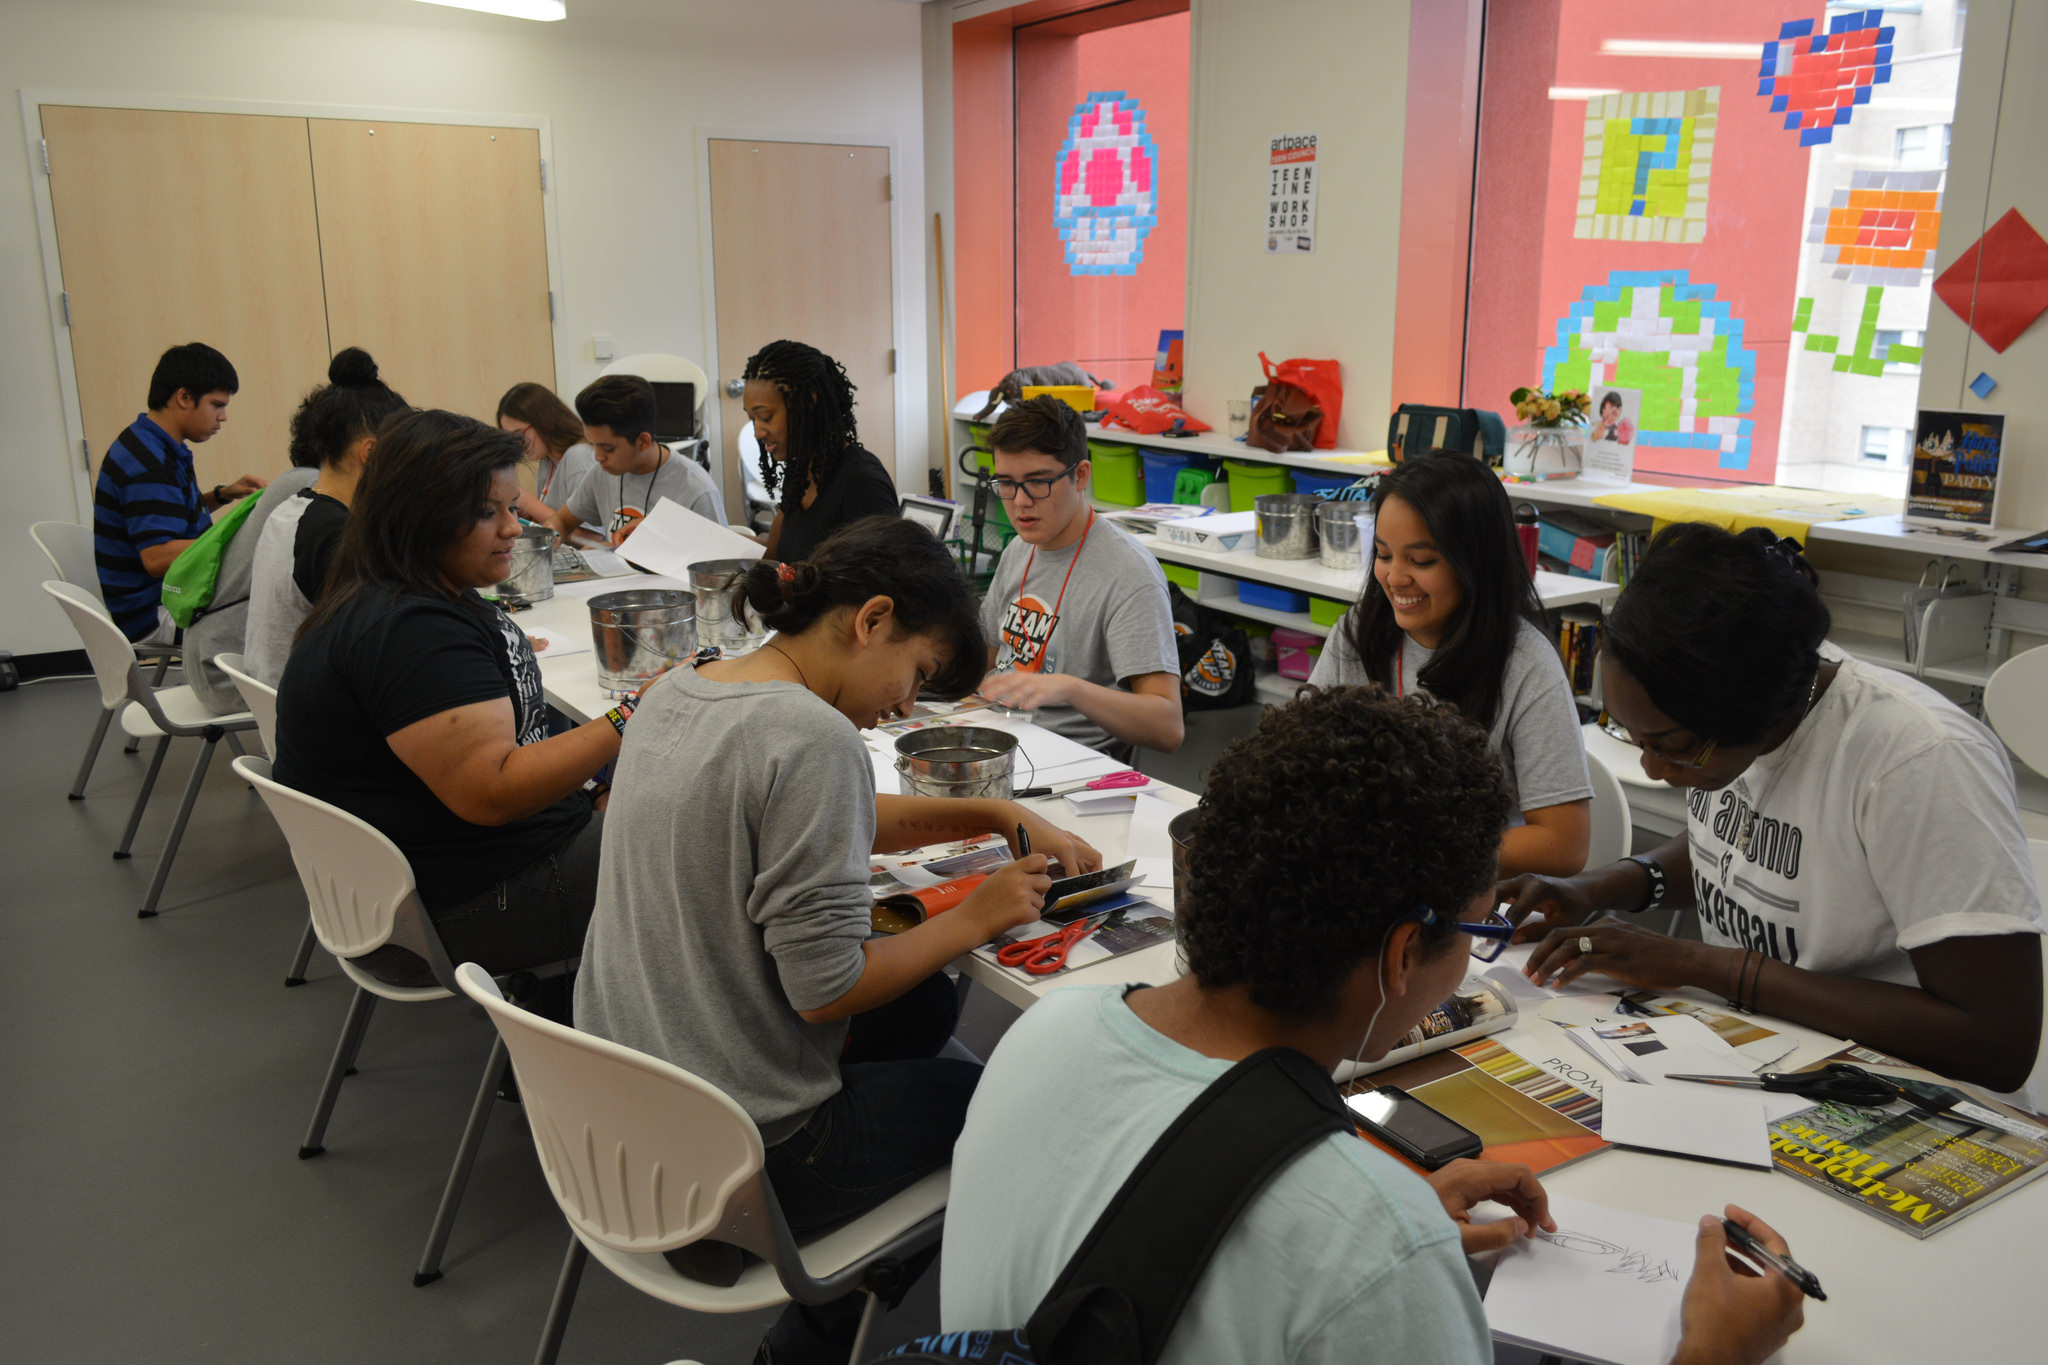 eens participate in zine making (magazine making) with staff from ArtPace. Photo by 210TeenLibrary.